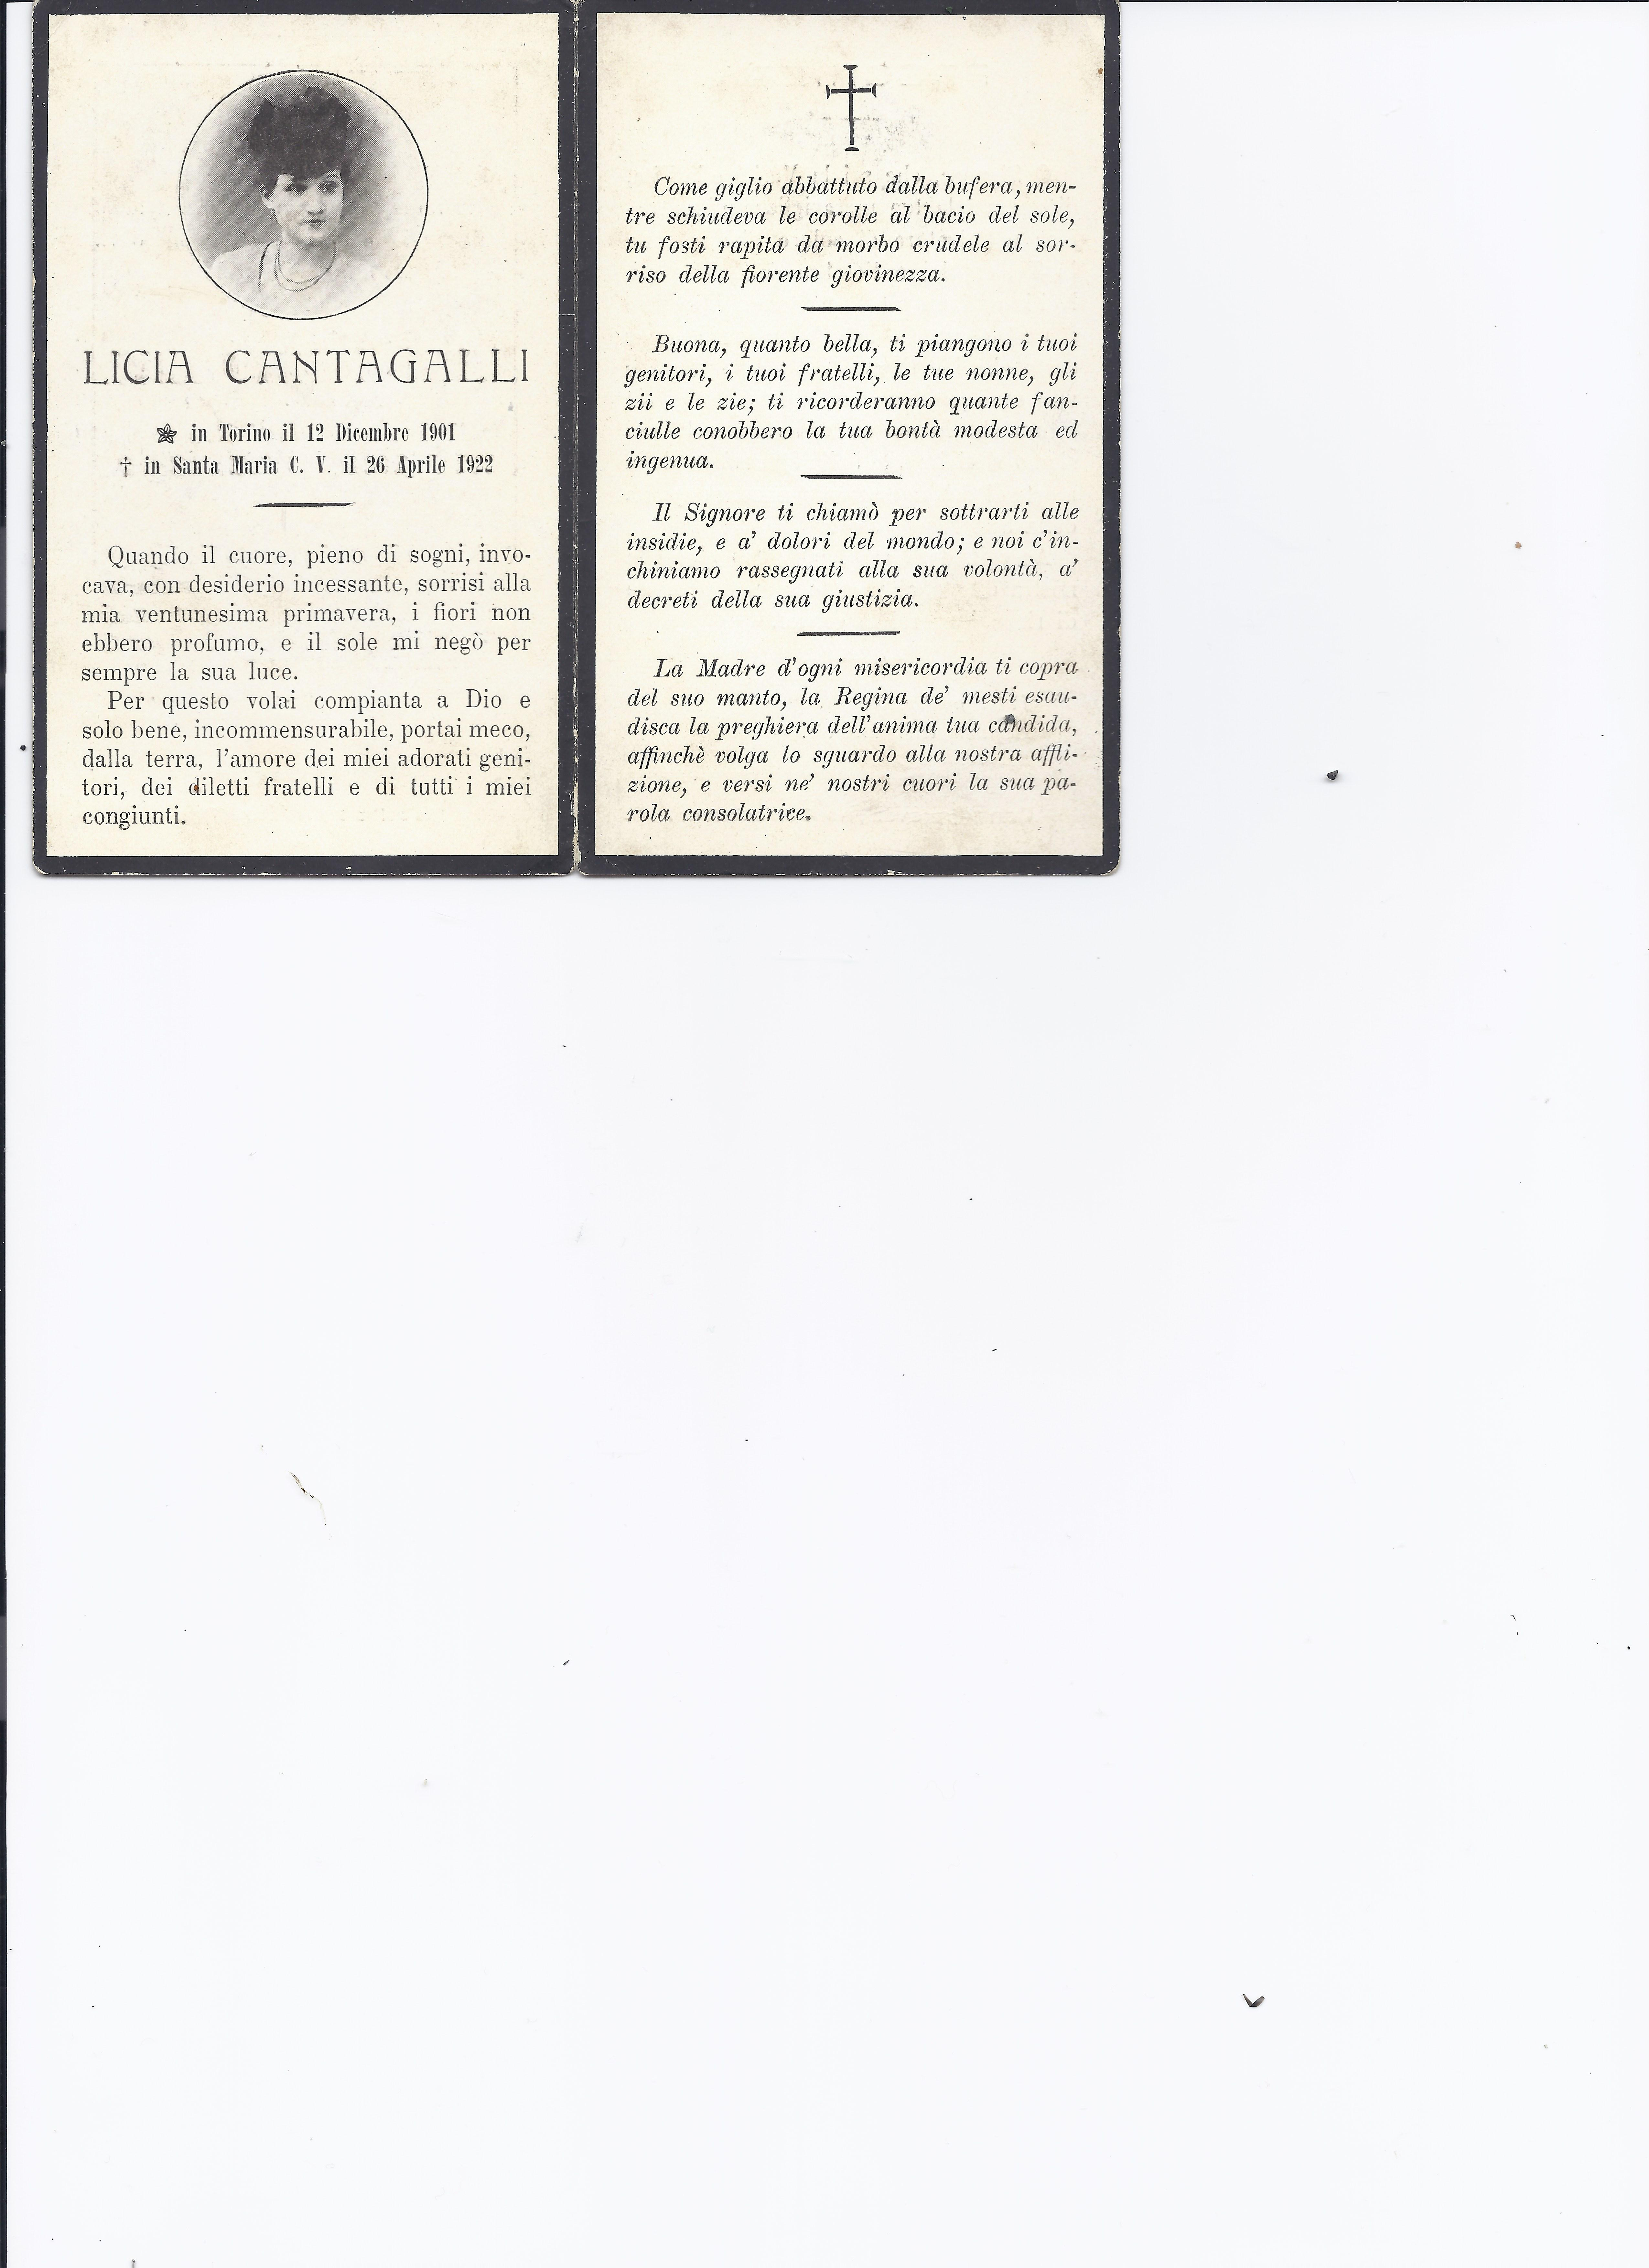 Card found in Grandma's Daily Missal - inside pages - Licia Can.jpg